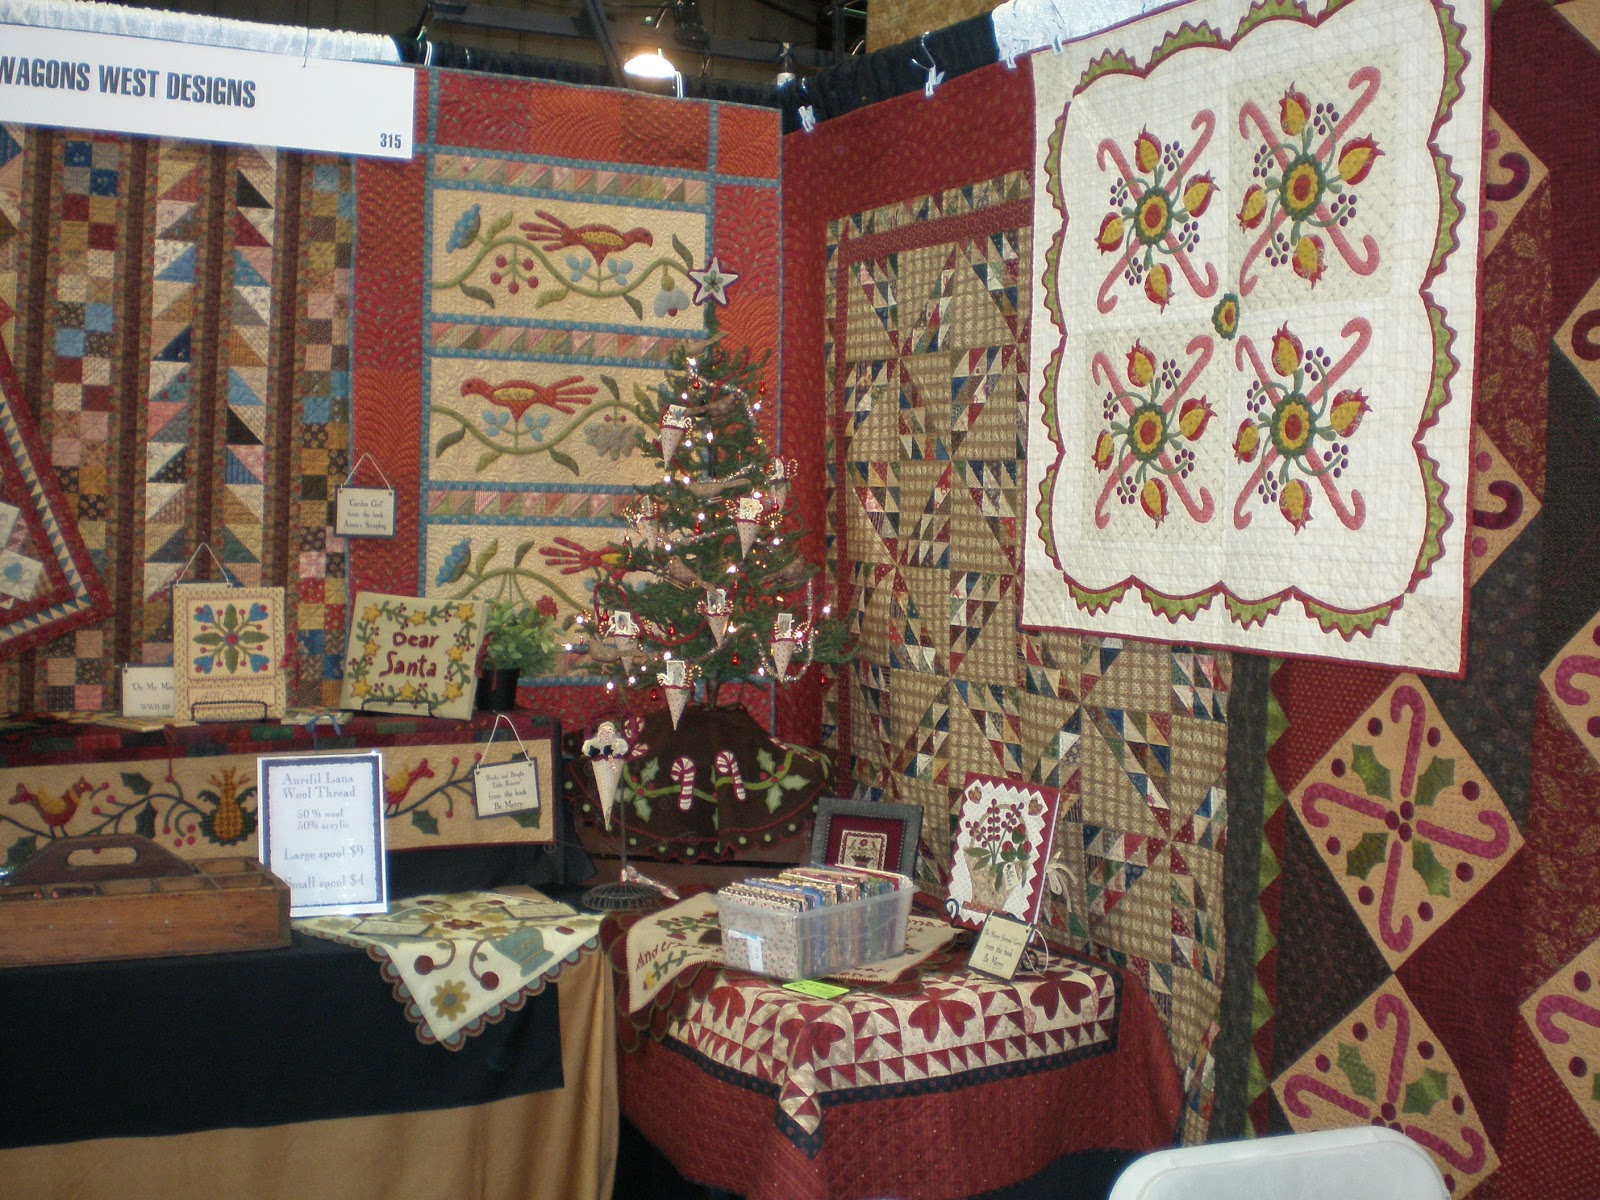 Wagons West Designs Phoenix Holiday Quilts Craft And Sewing